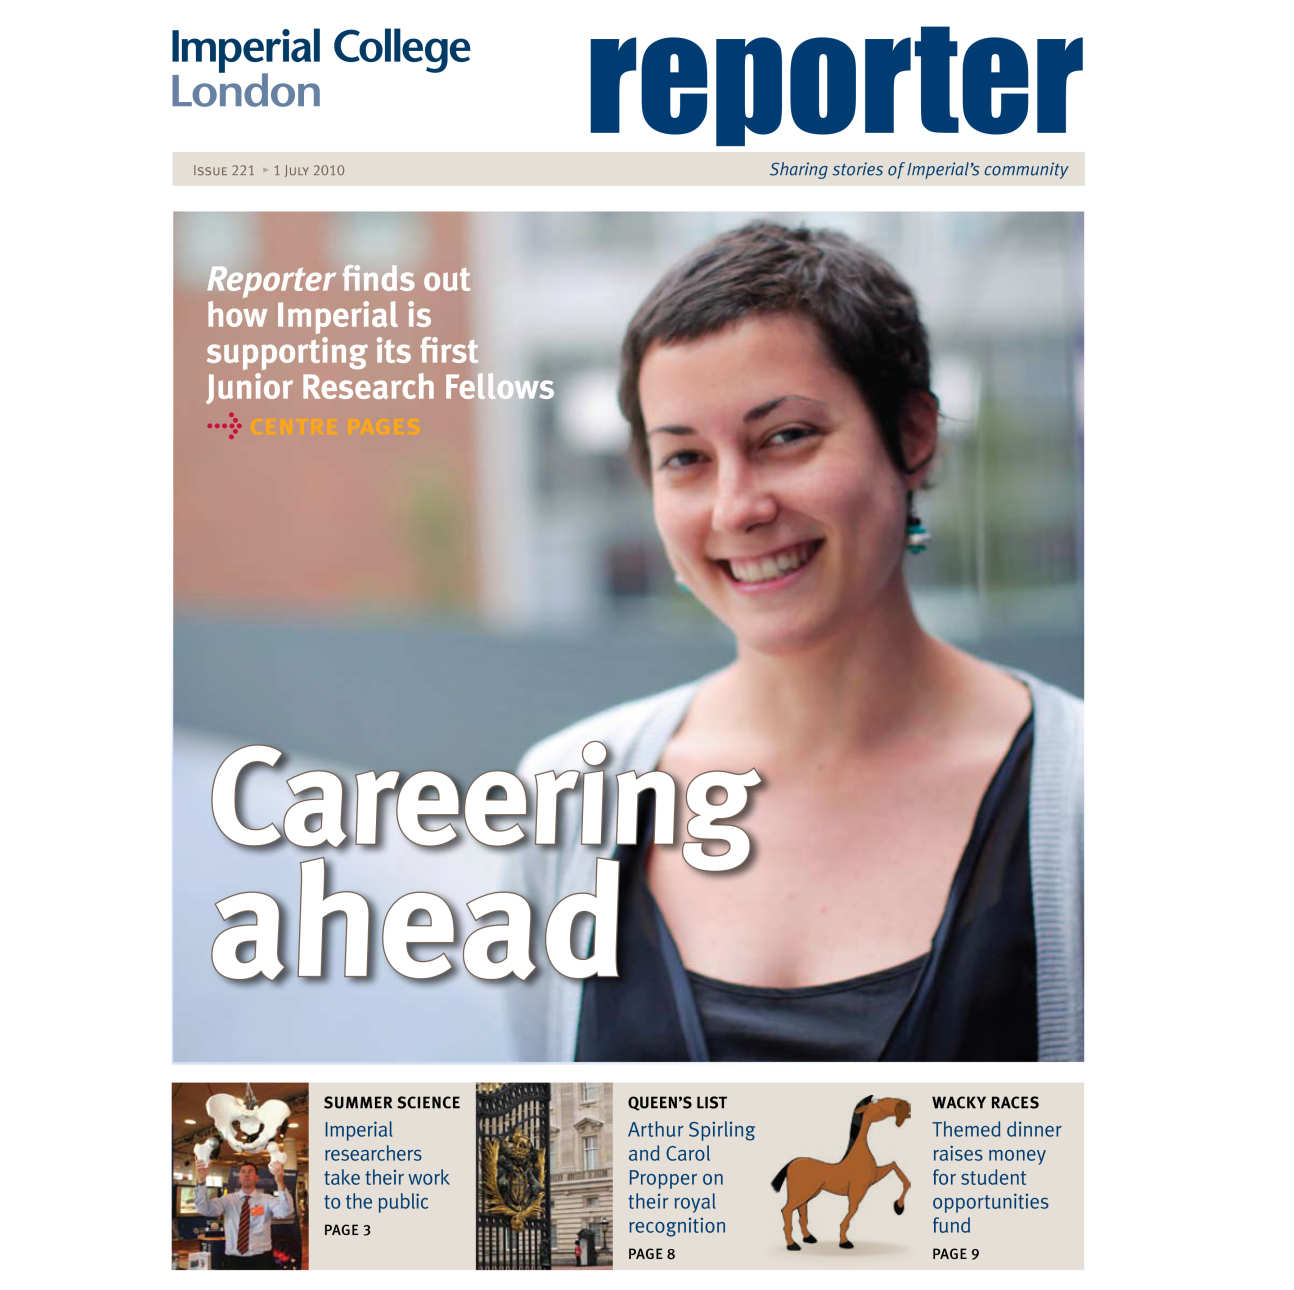 Issue 221 - 1 July 2010